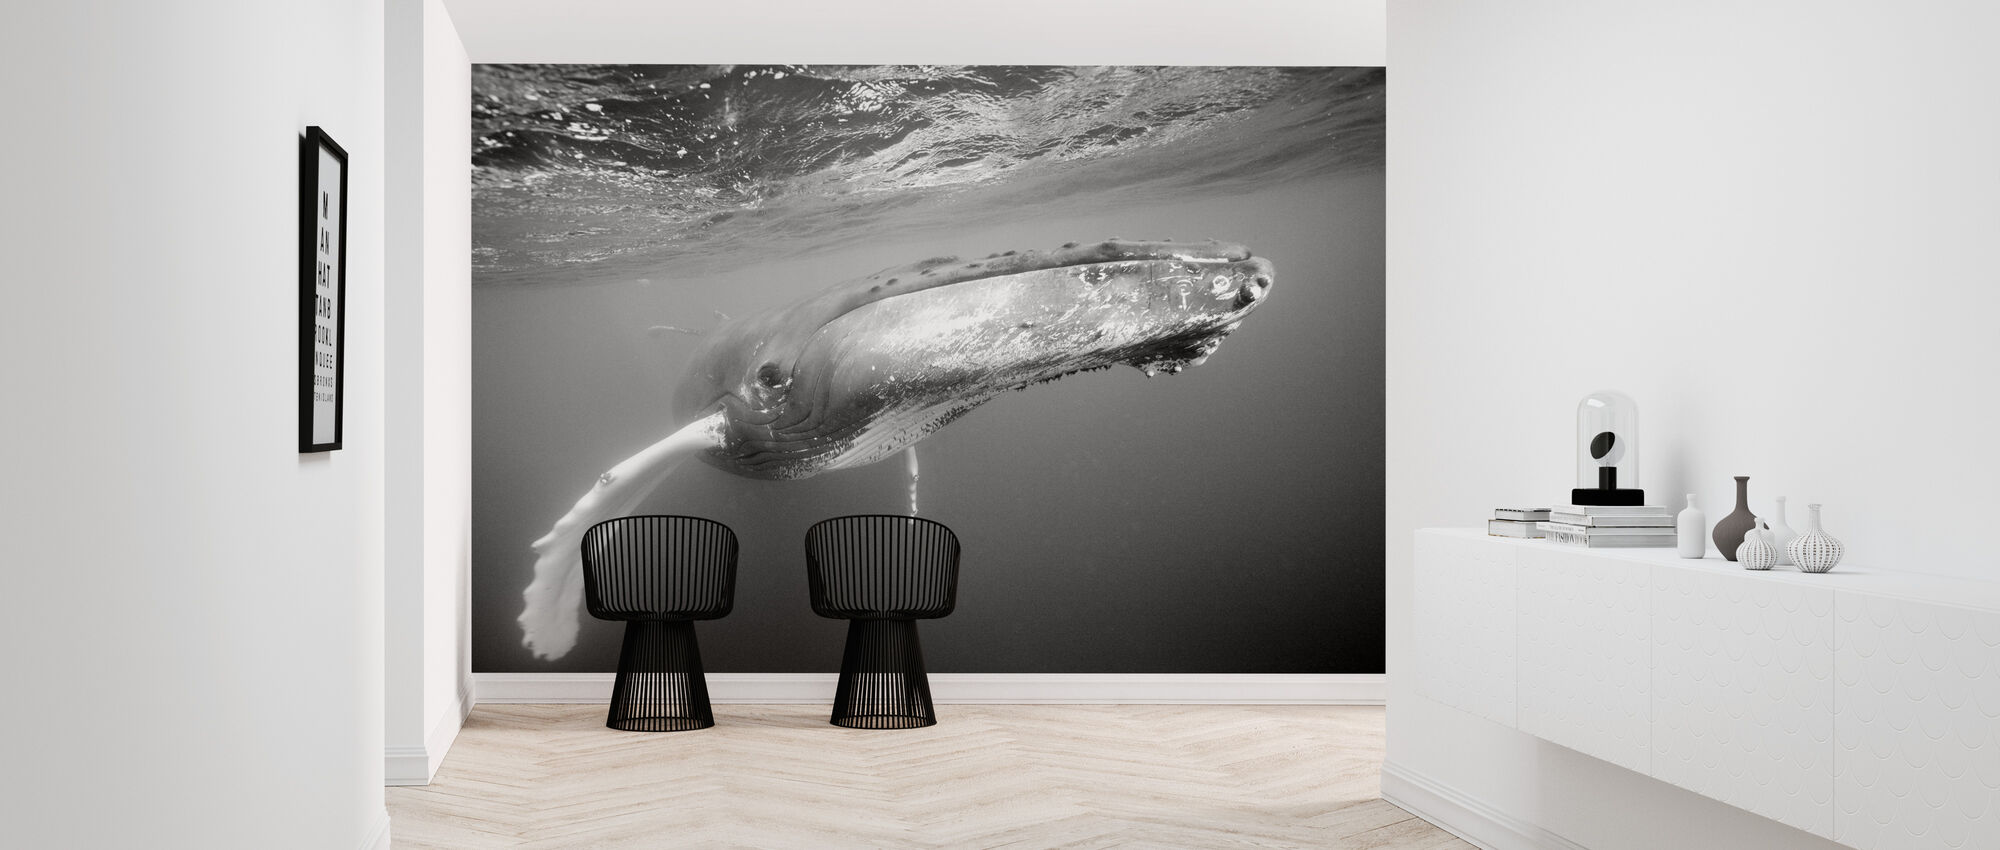 Humpback Whale - Wallpaper - Hallway